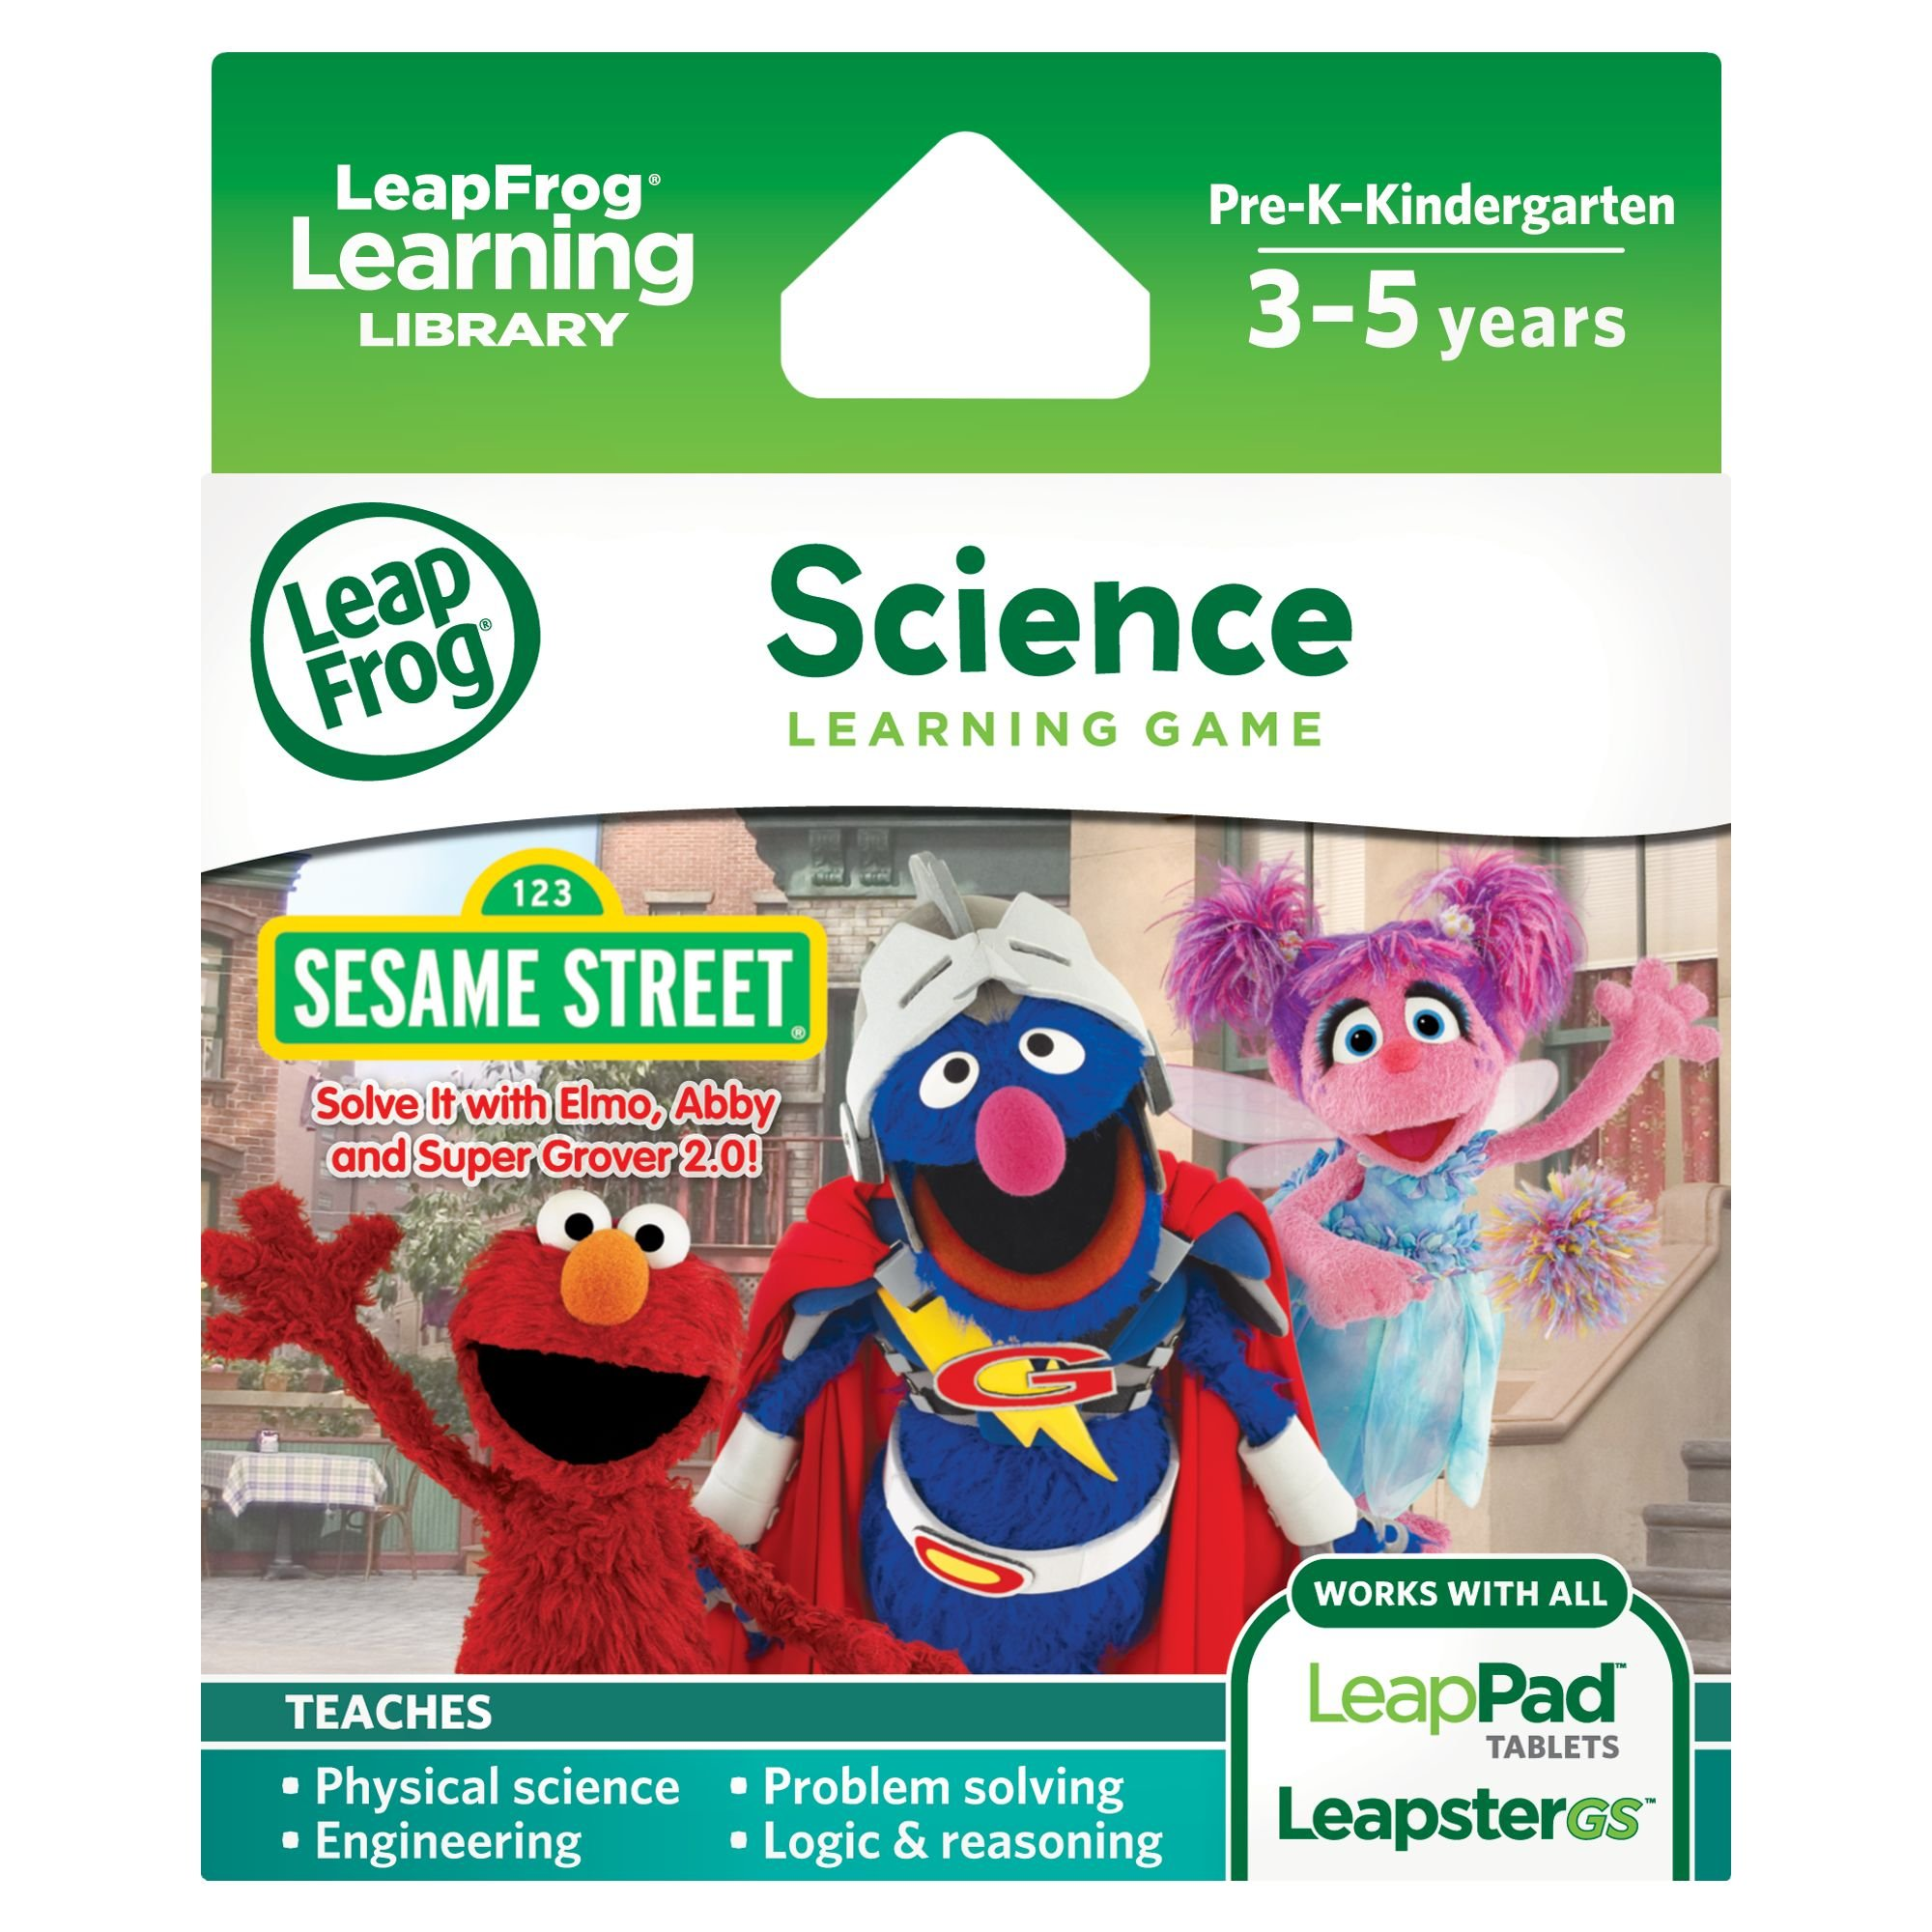 LeapFrog Learning Game: Sesame Street Solve it with Elmo (for LeapPad Tablets and LeapsterGS) by LeapFrog